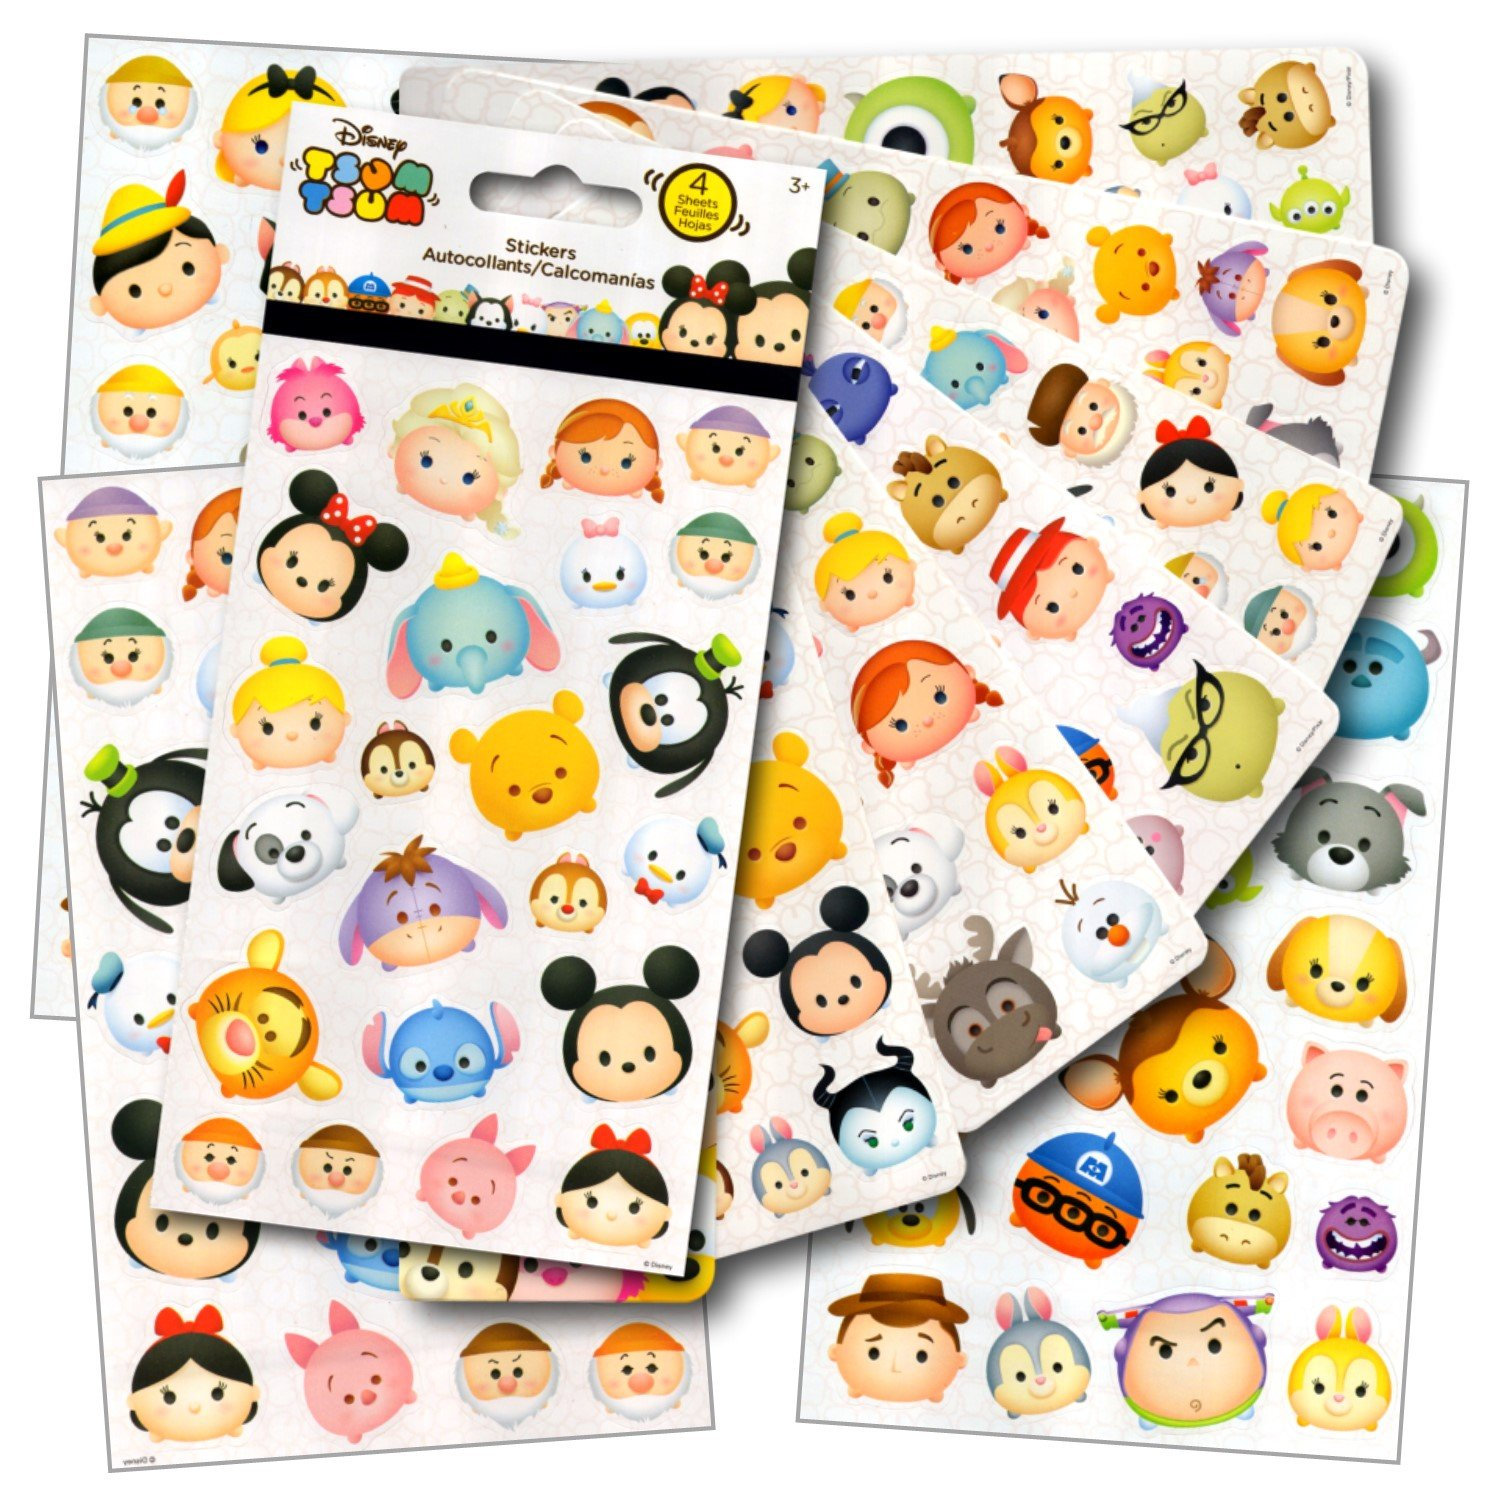 Disney Packing List item, stickers